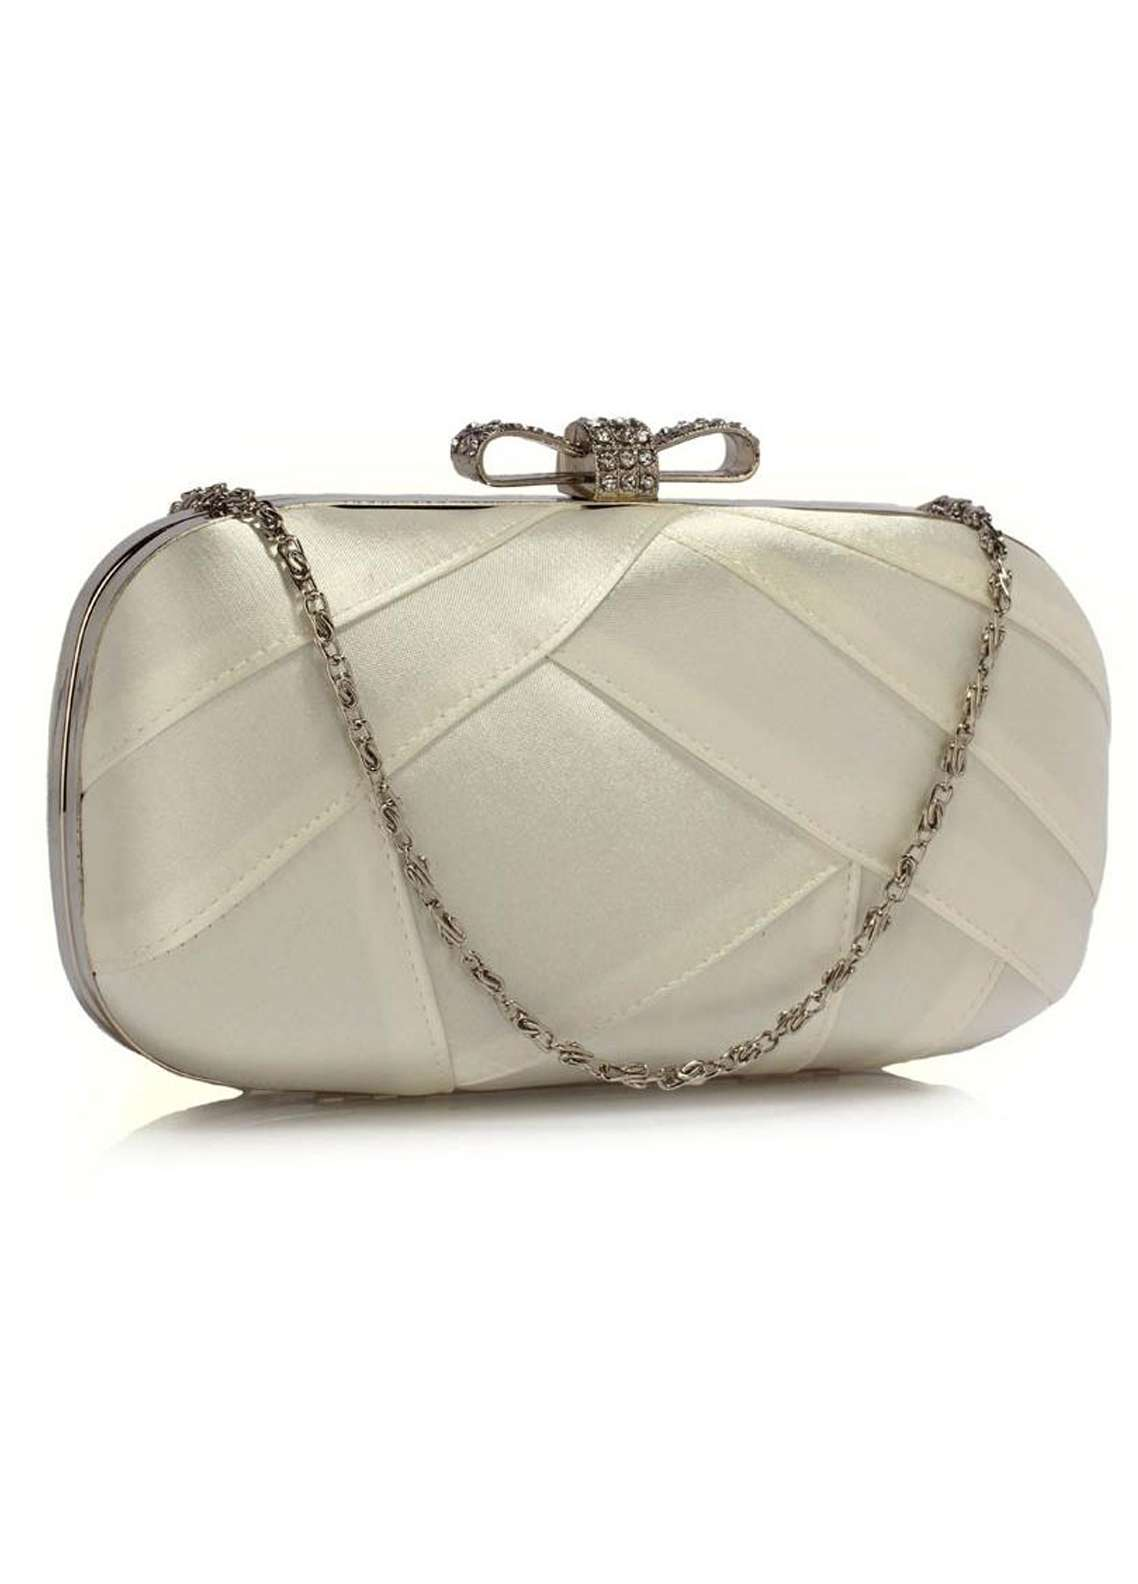 Leesun London  Satin Clutch Bags  for Women  Ivory with Plain Texture